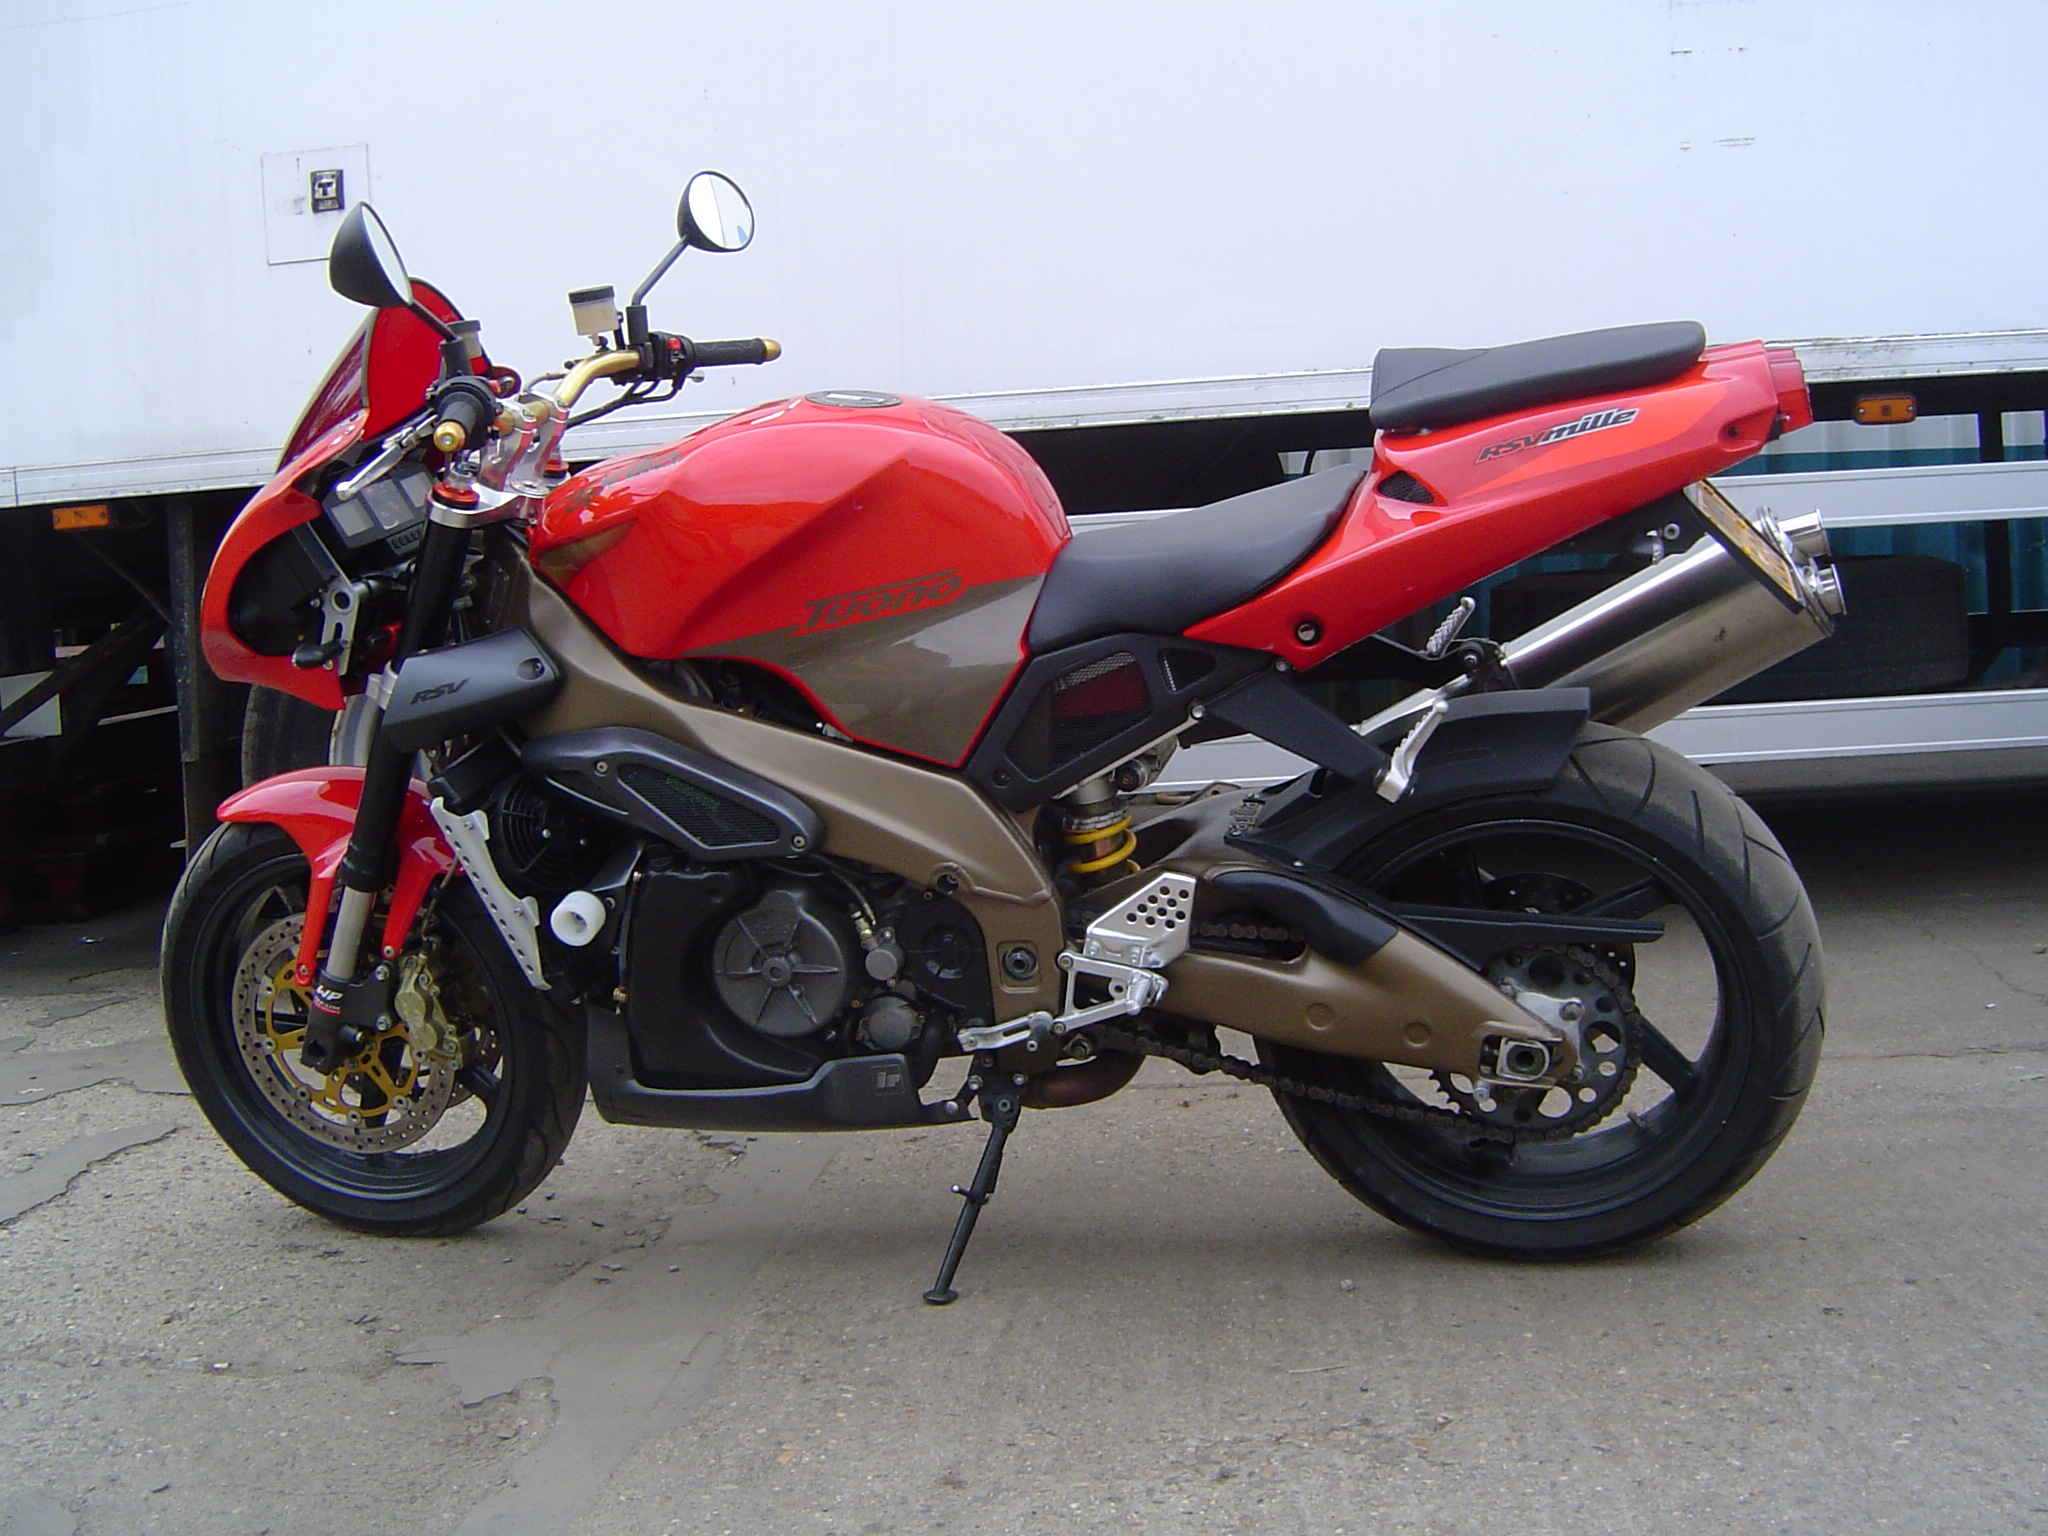 2003 Aprilia Tuono 1000: pics, specs and information